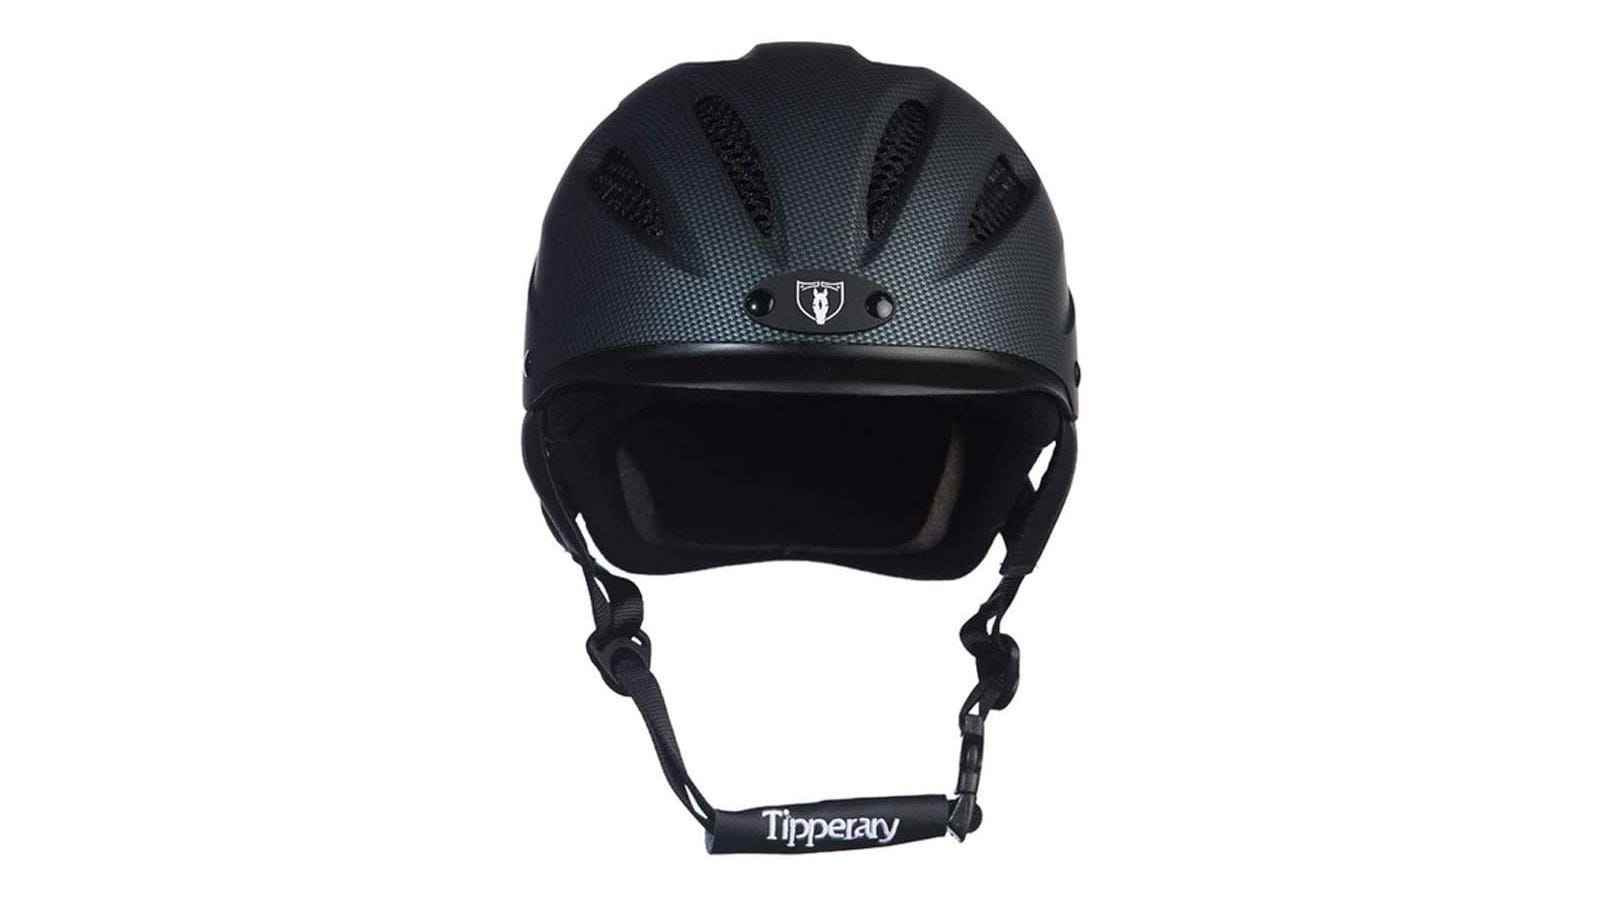 A black horse riding helmet against a white background.